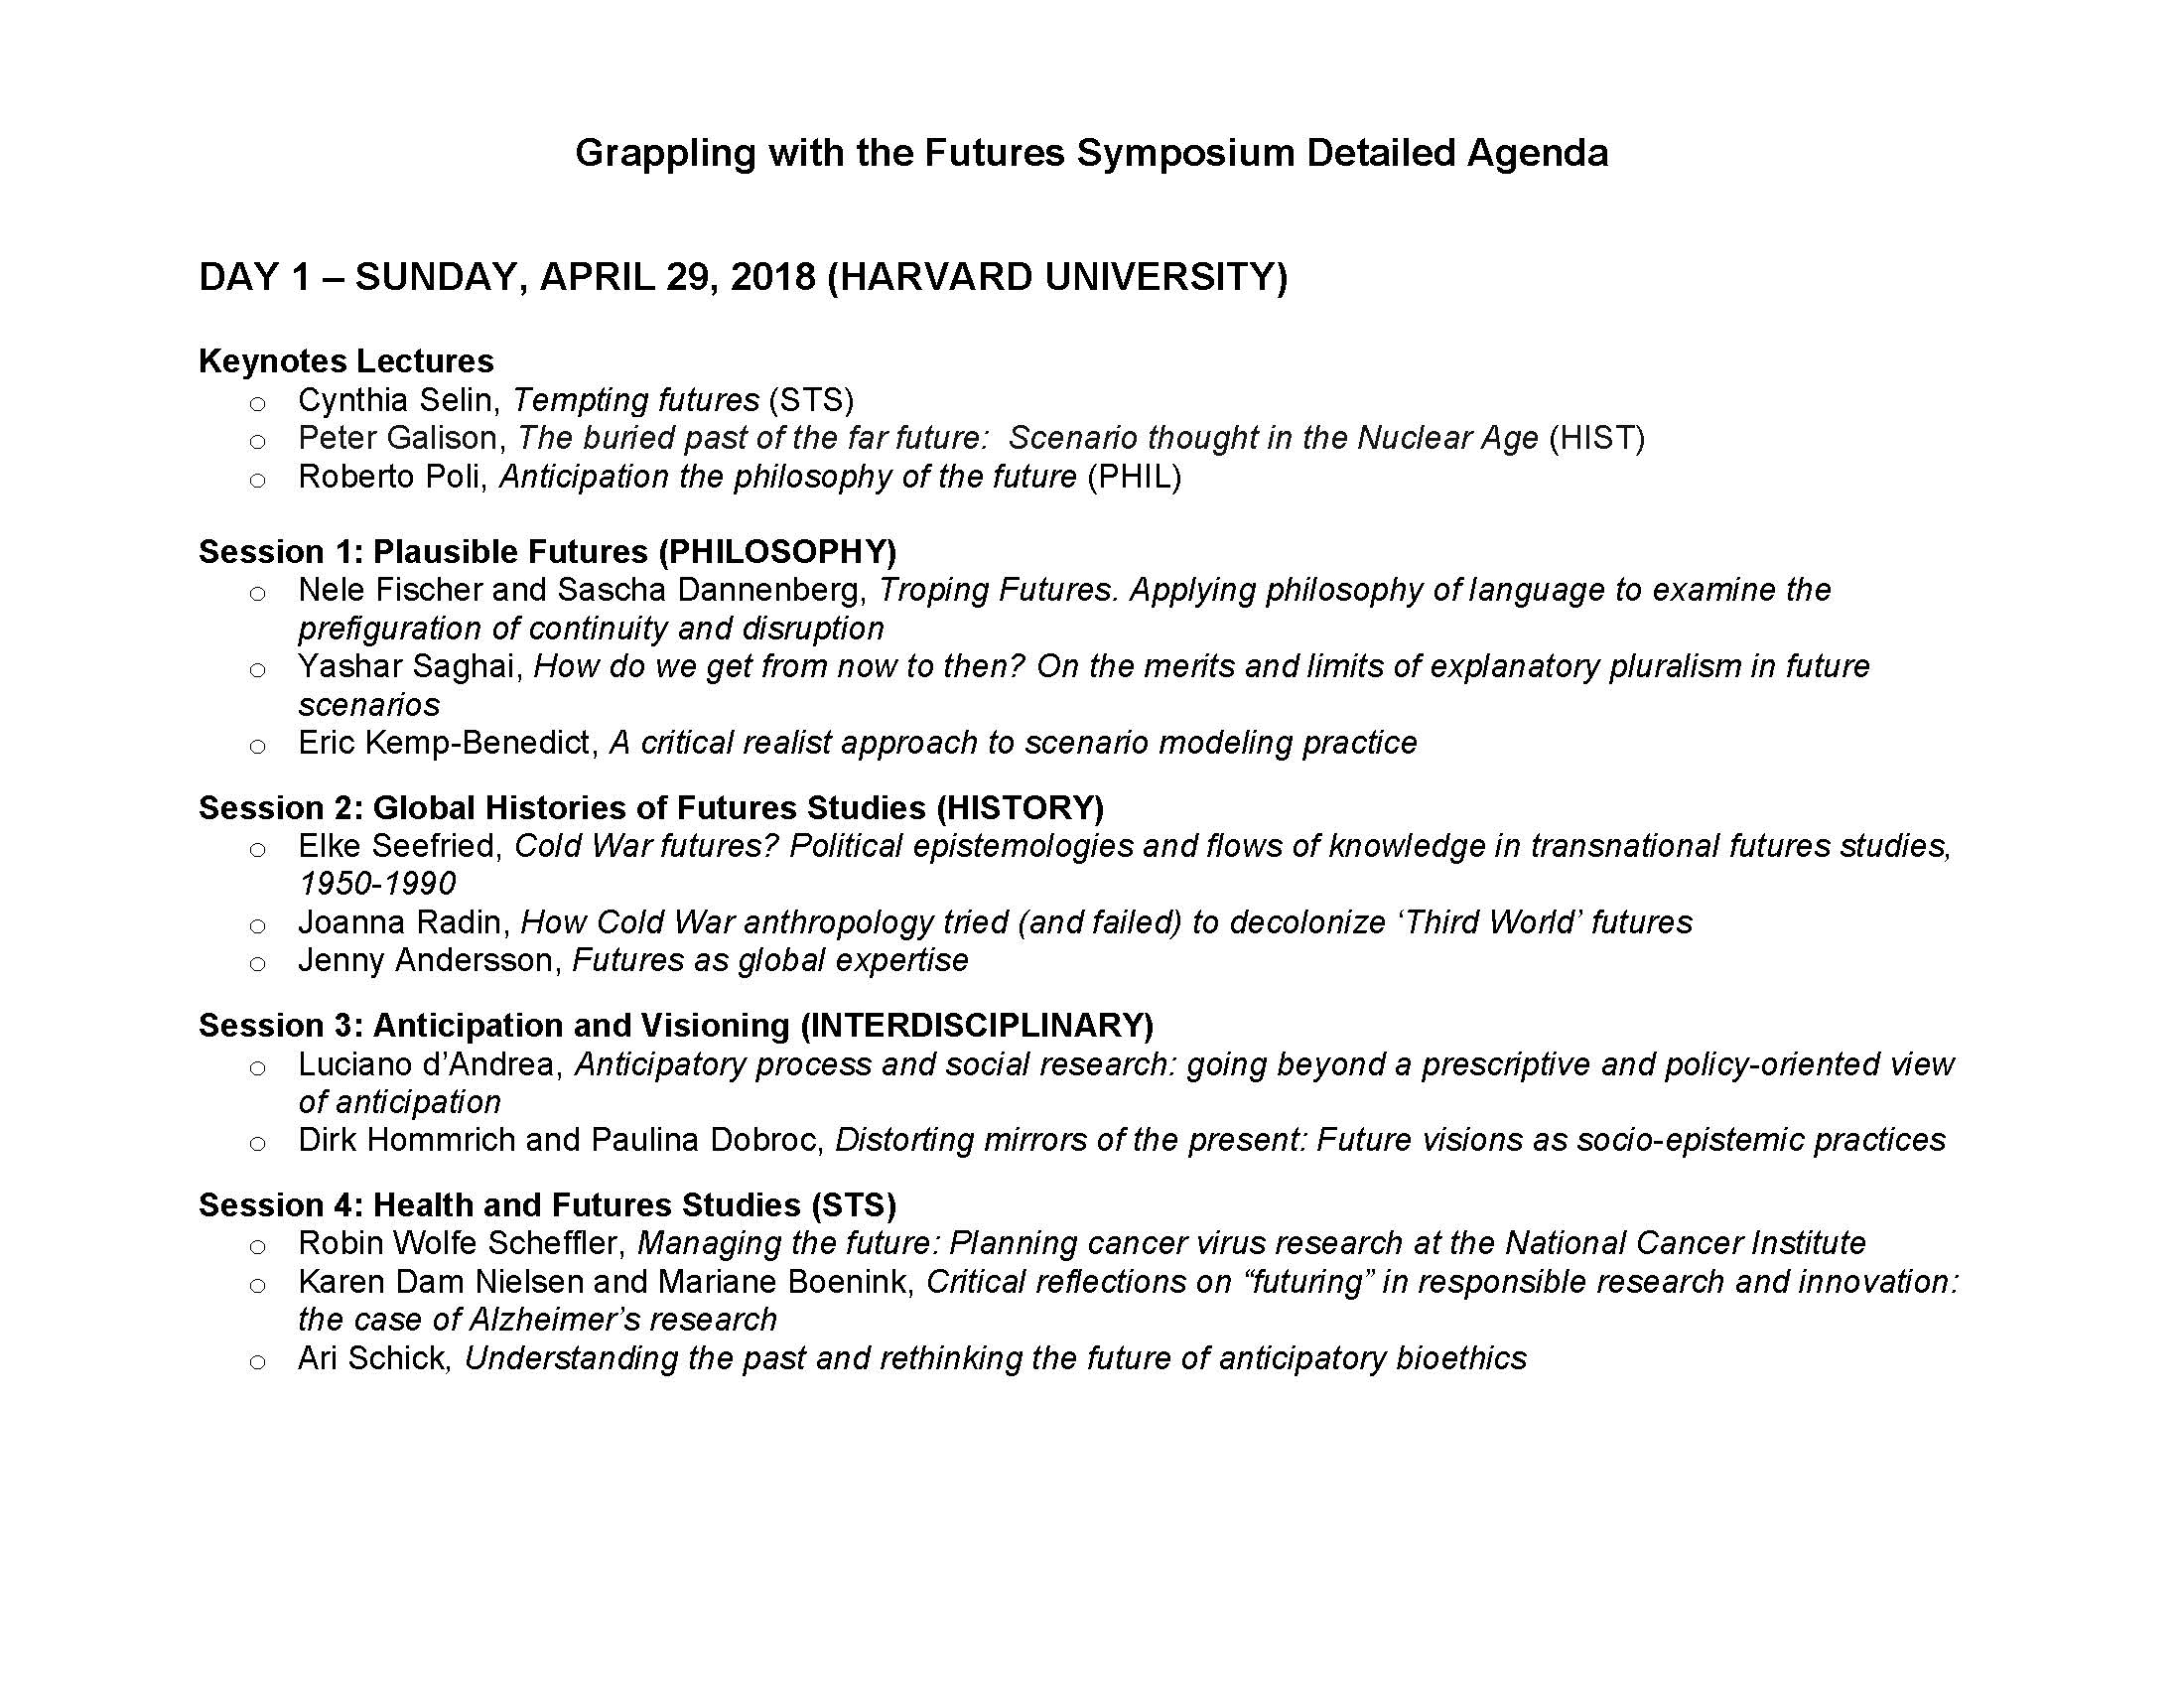 GwF Symposium Schedule Updated April 20 2018_Part2.jpg